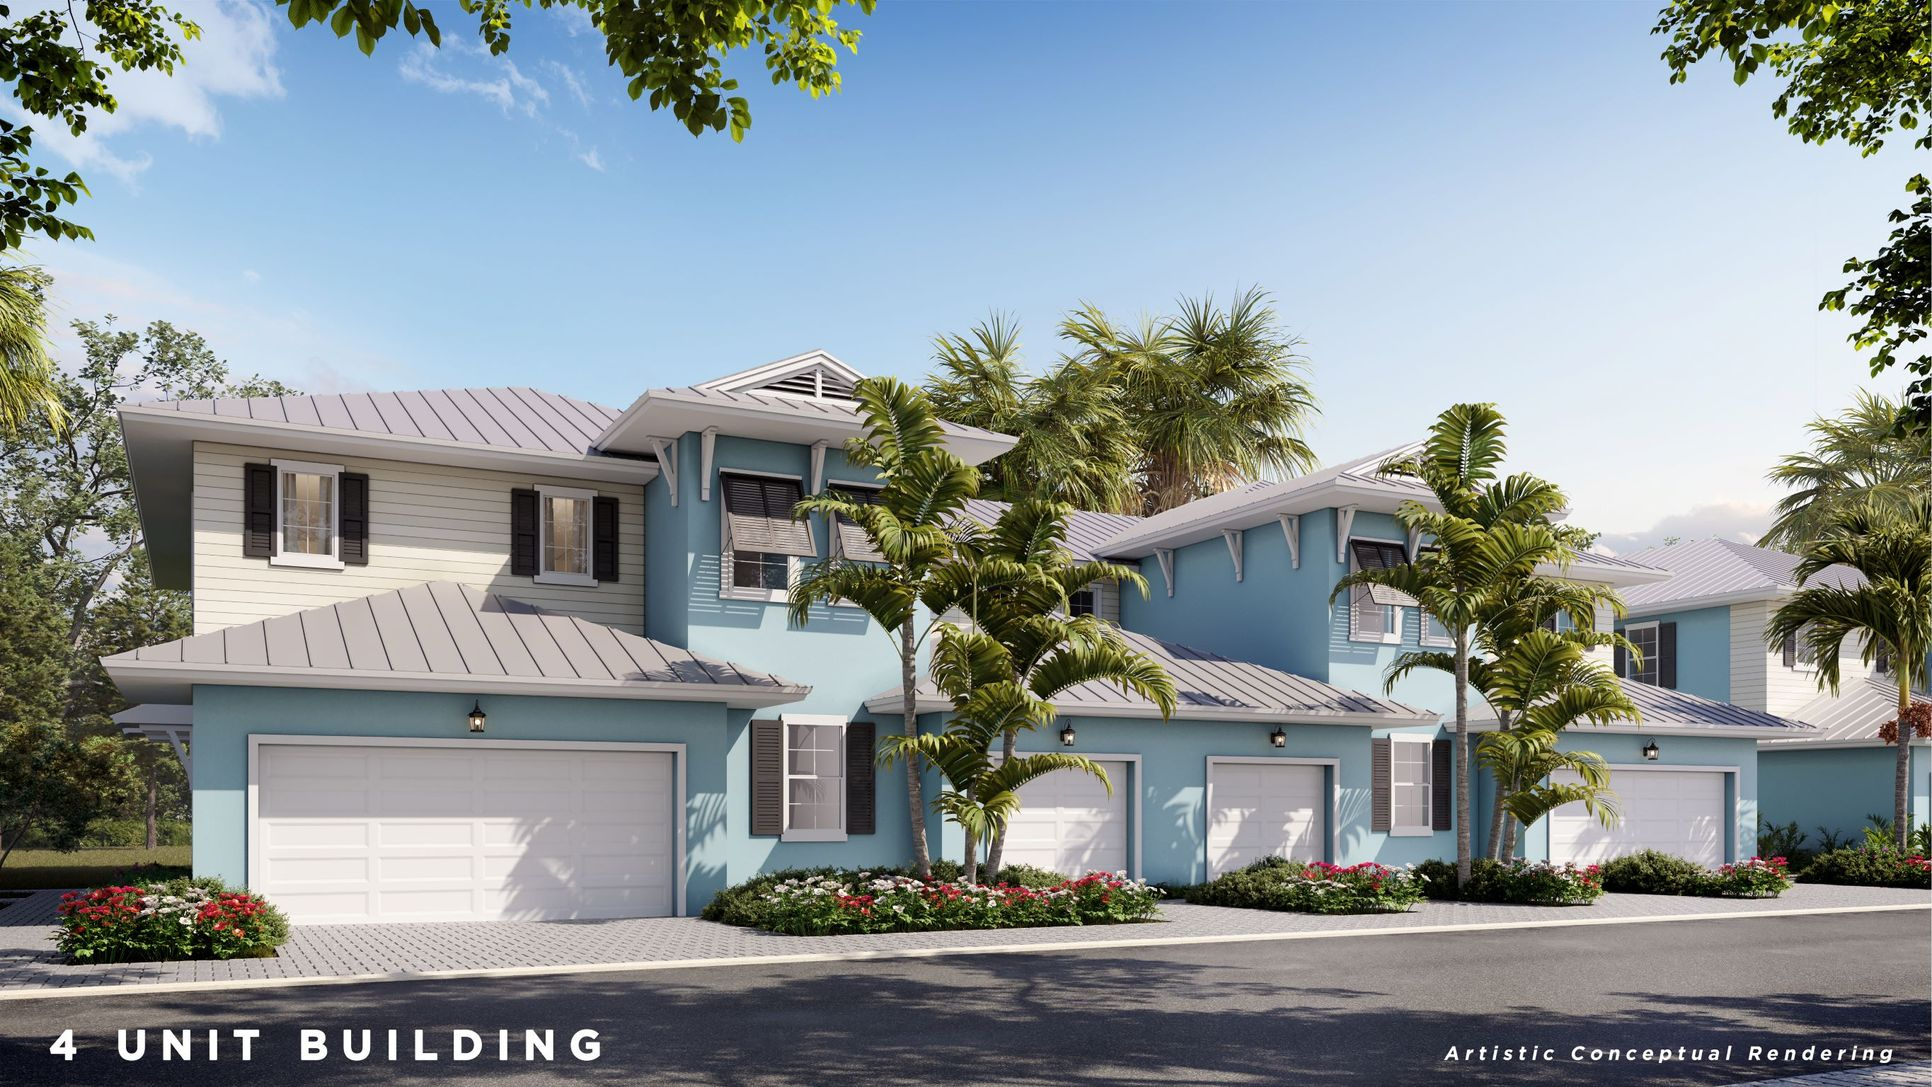 4 Residence Building - Artistic Conceptual Rendering